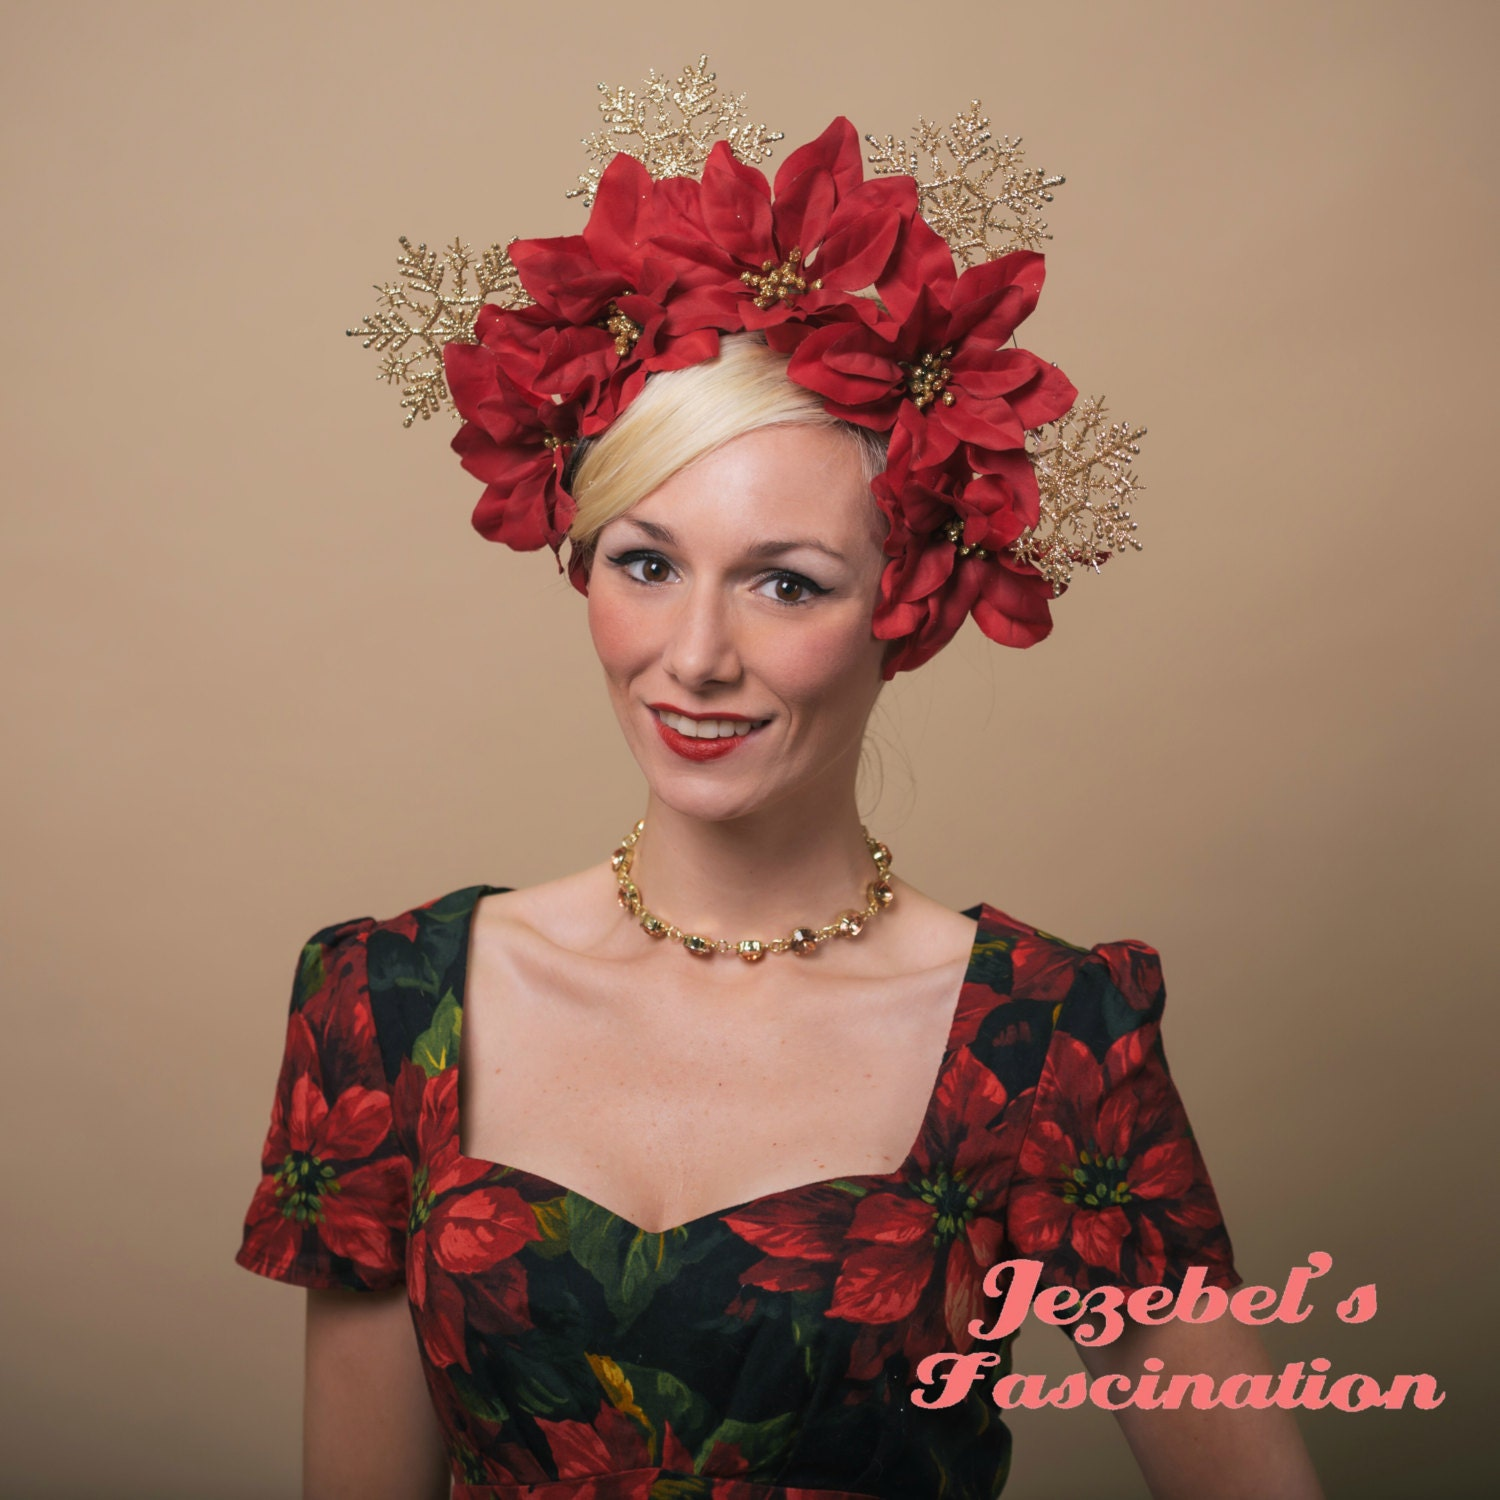 Large red poinsettia flower crown ugly christmas sweater head piece large red poinsettia flower crown ugly christmas sweater head piece novelty party headdress gold glitter snowflake holiday headpiece drag izmirmasajfo